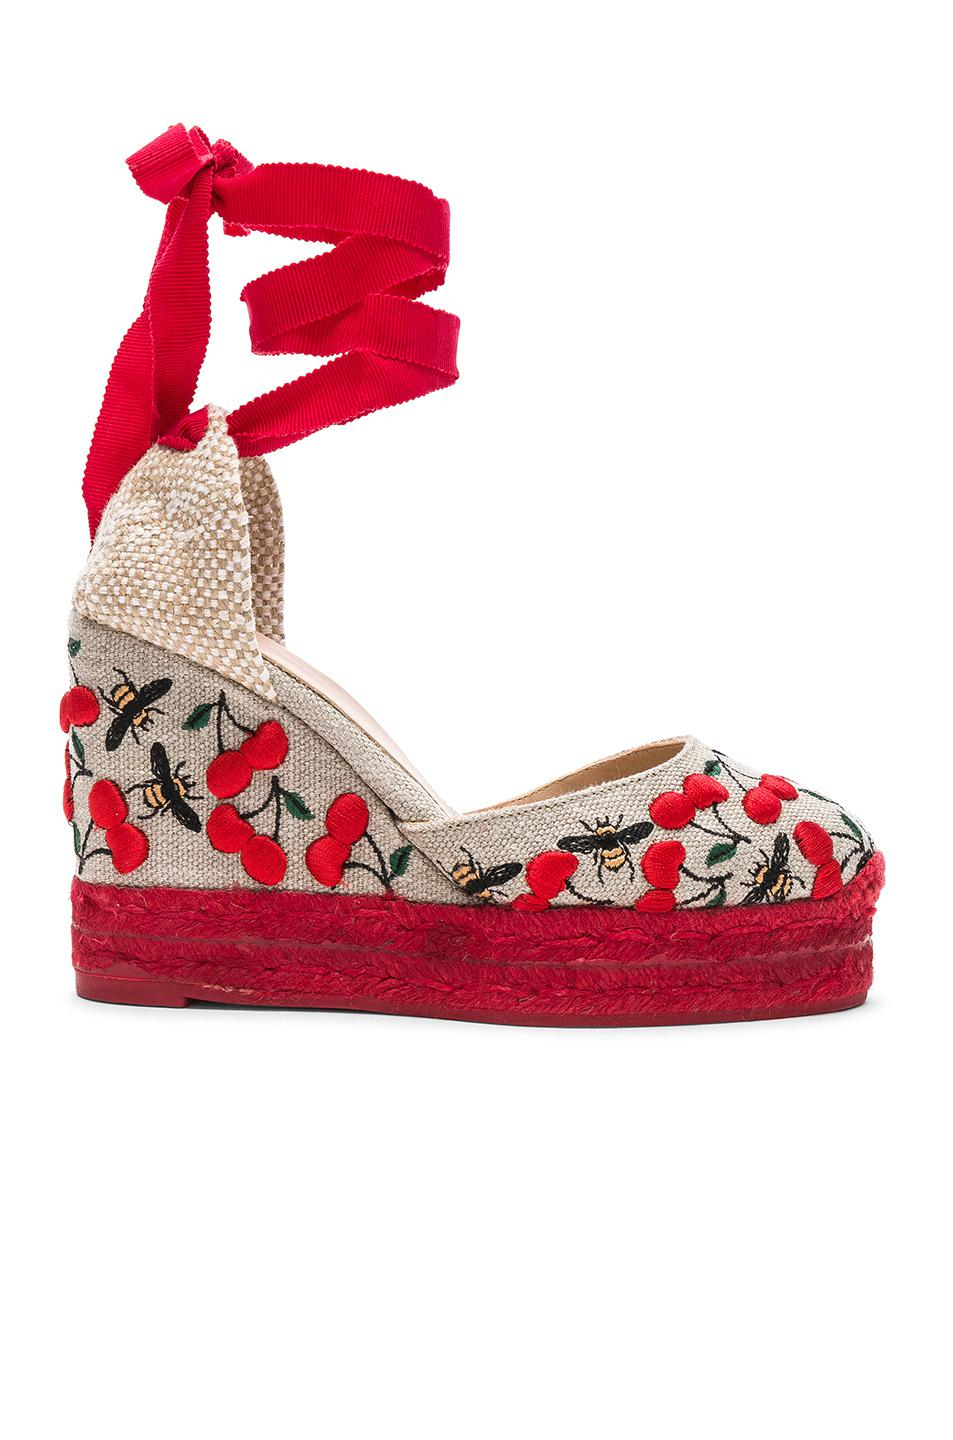 Embroidered Canvas Carina Espadrilles in Red Castaner cFvvbKrA